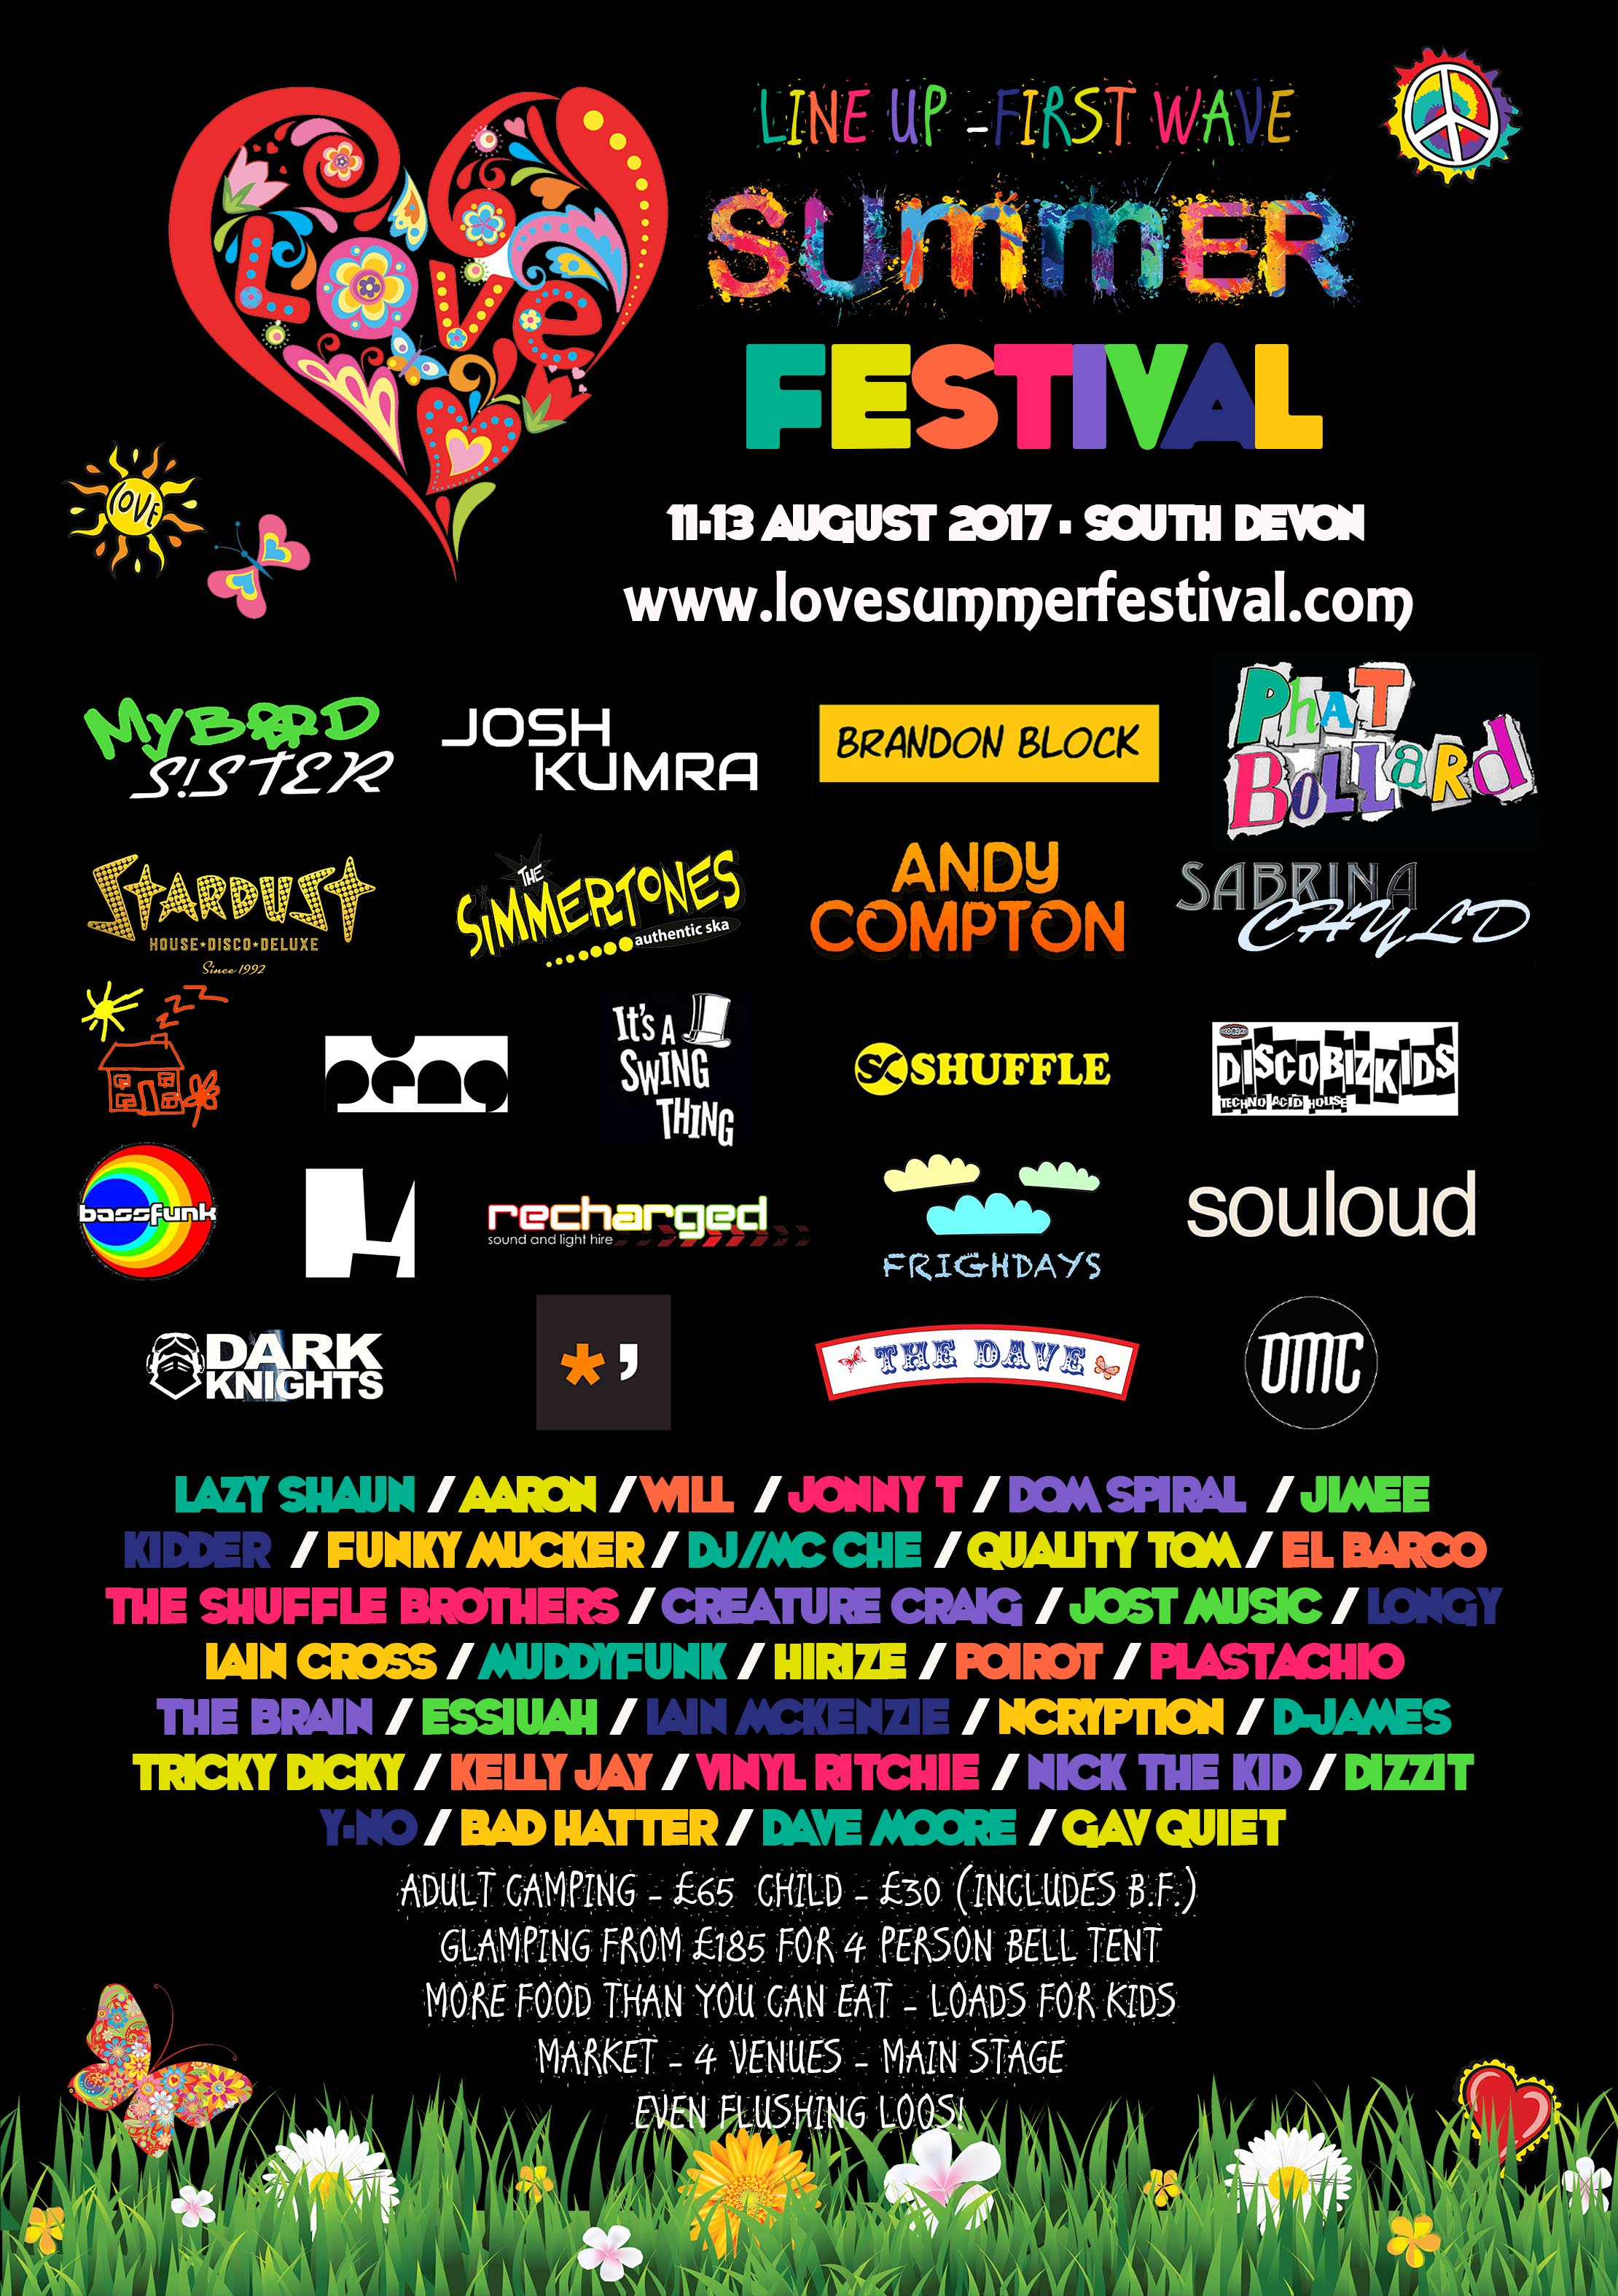 Love Summer Festival 2017 U2013 First Wave Line Up